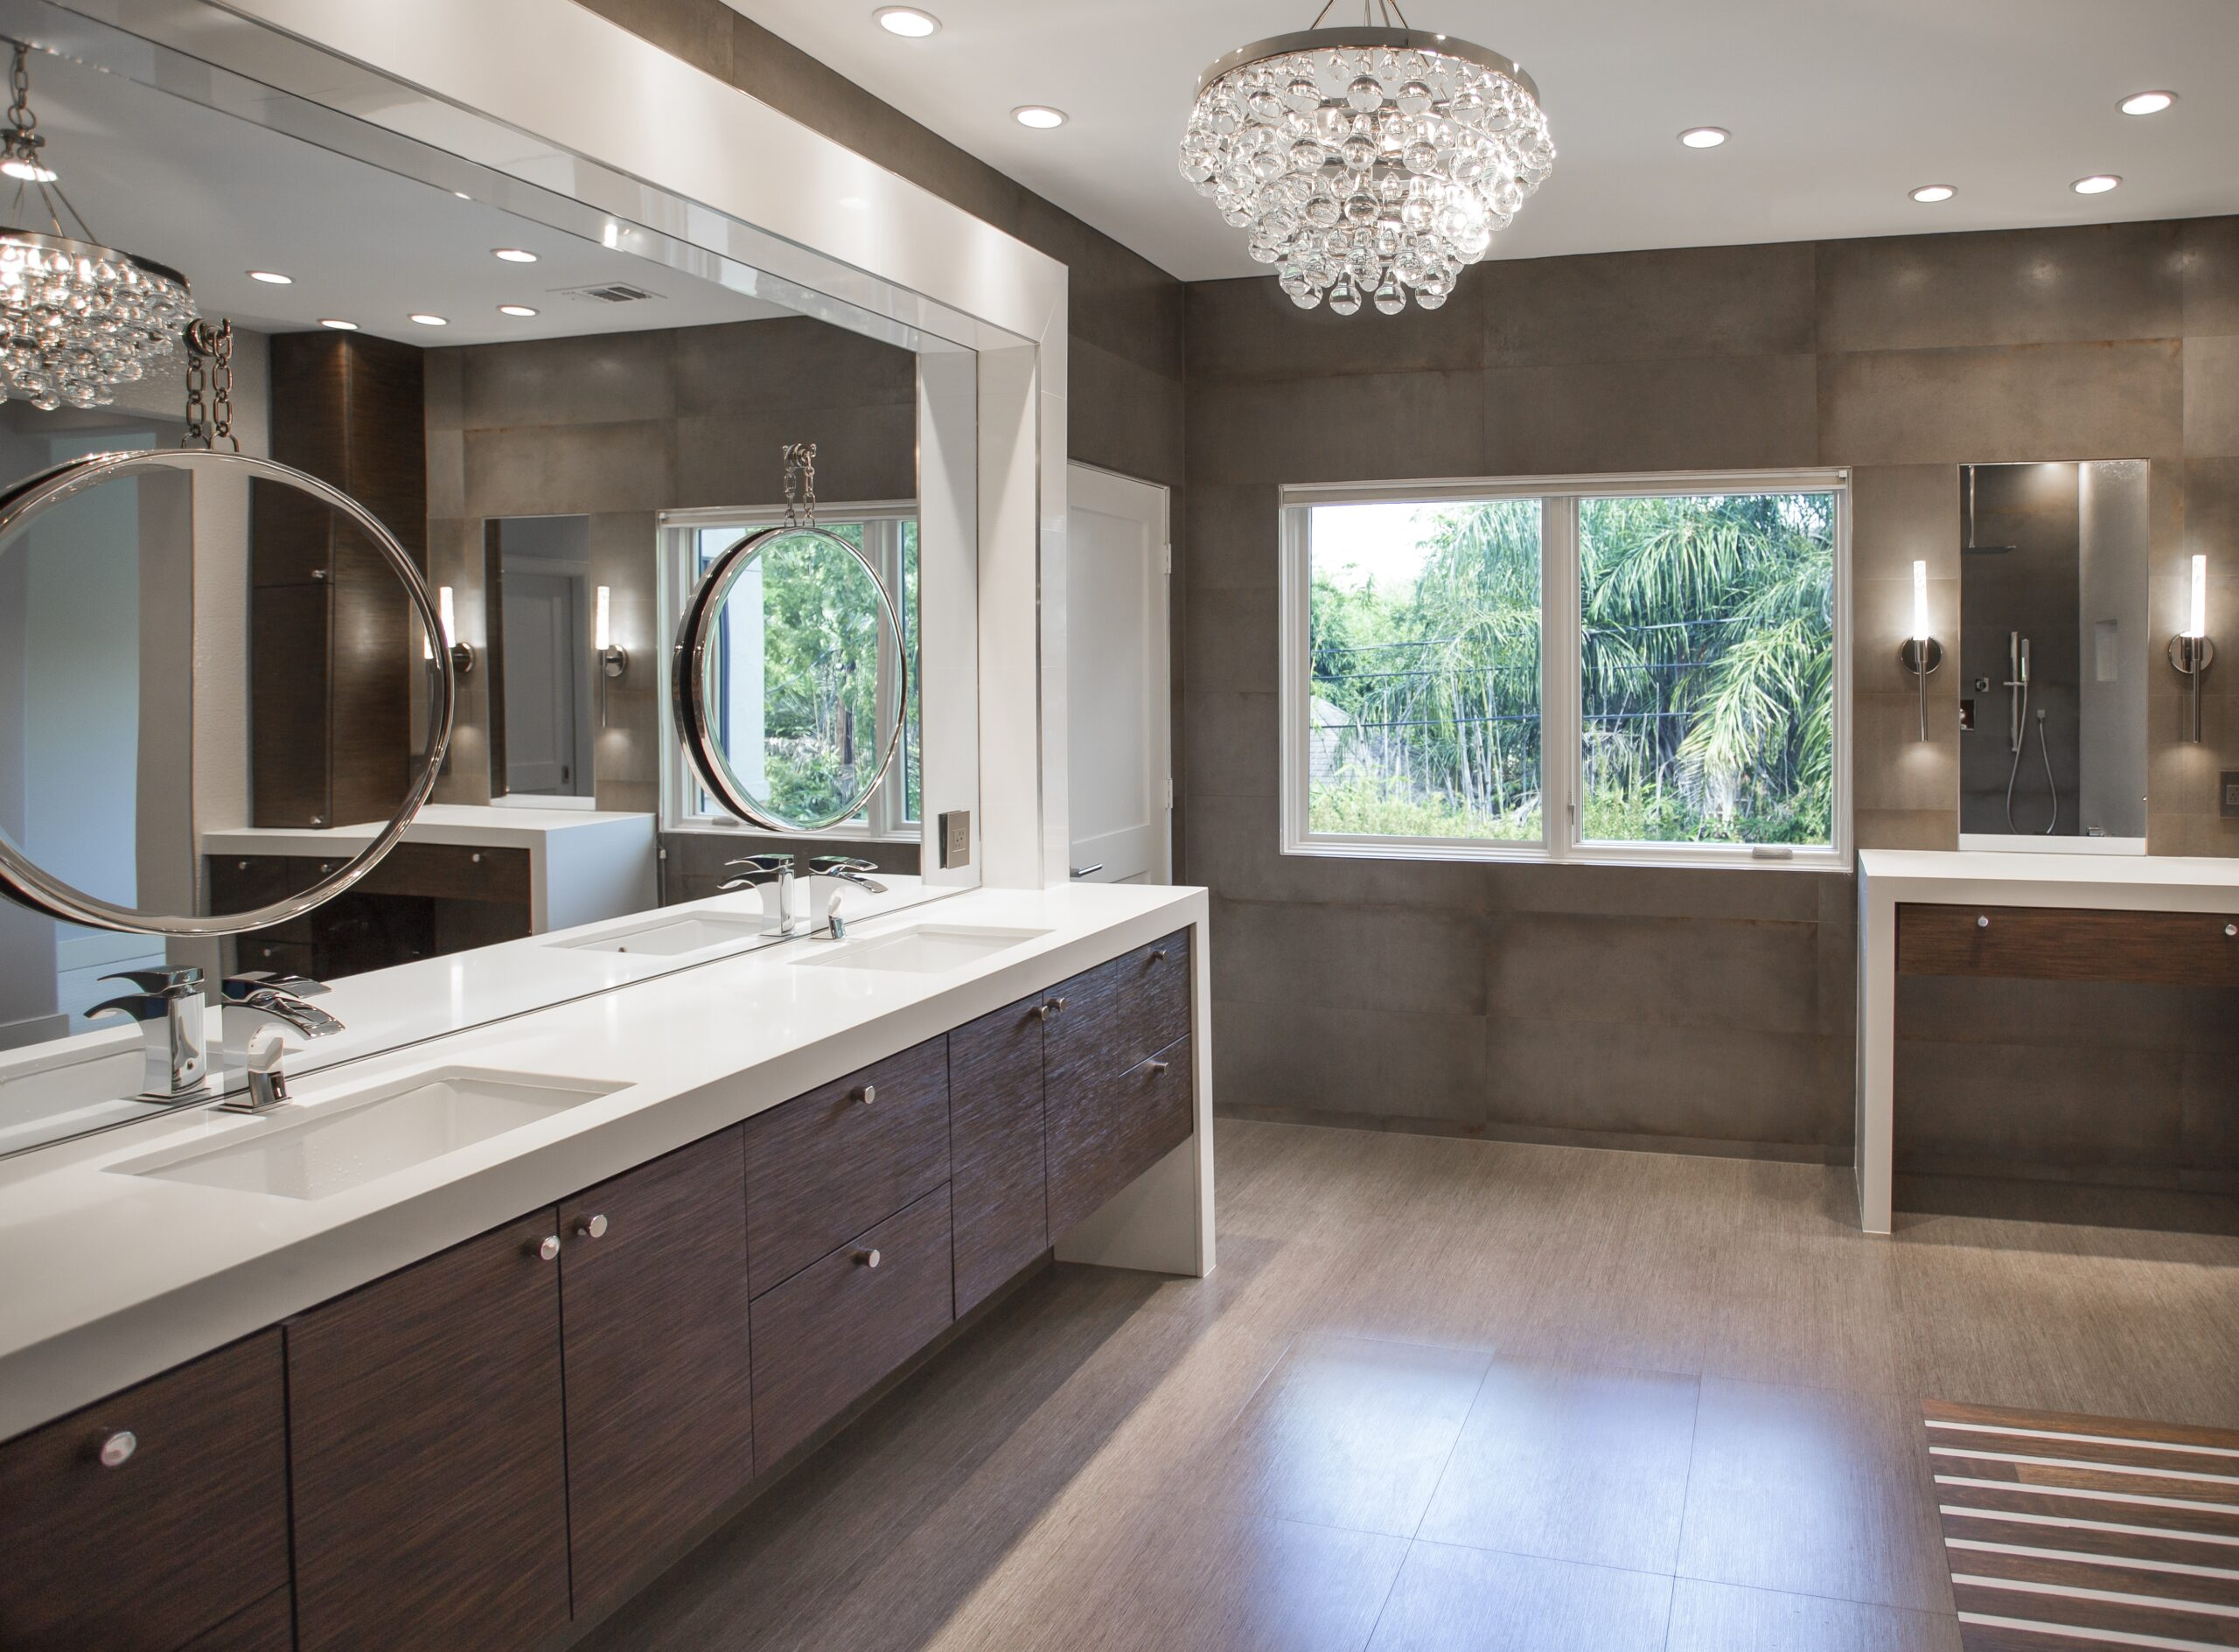 West University Master Bathroom